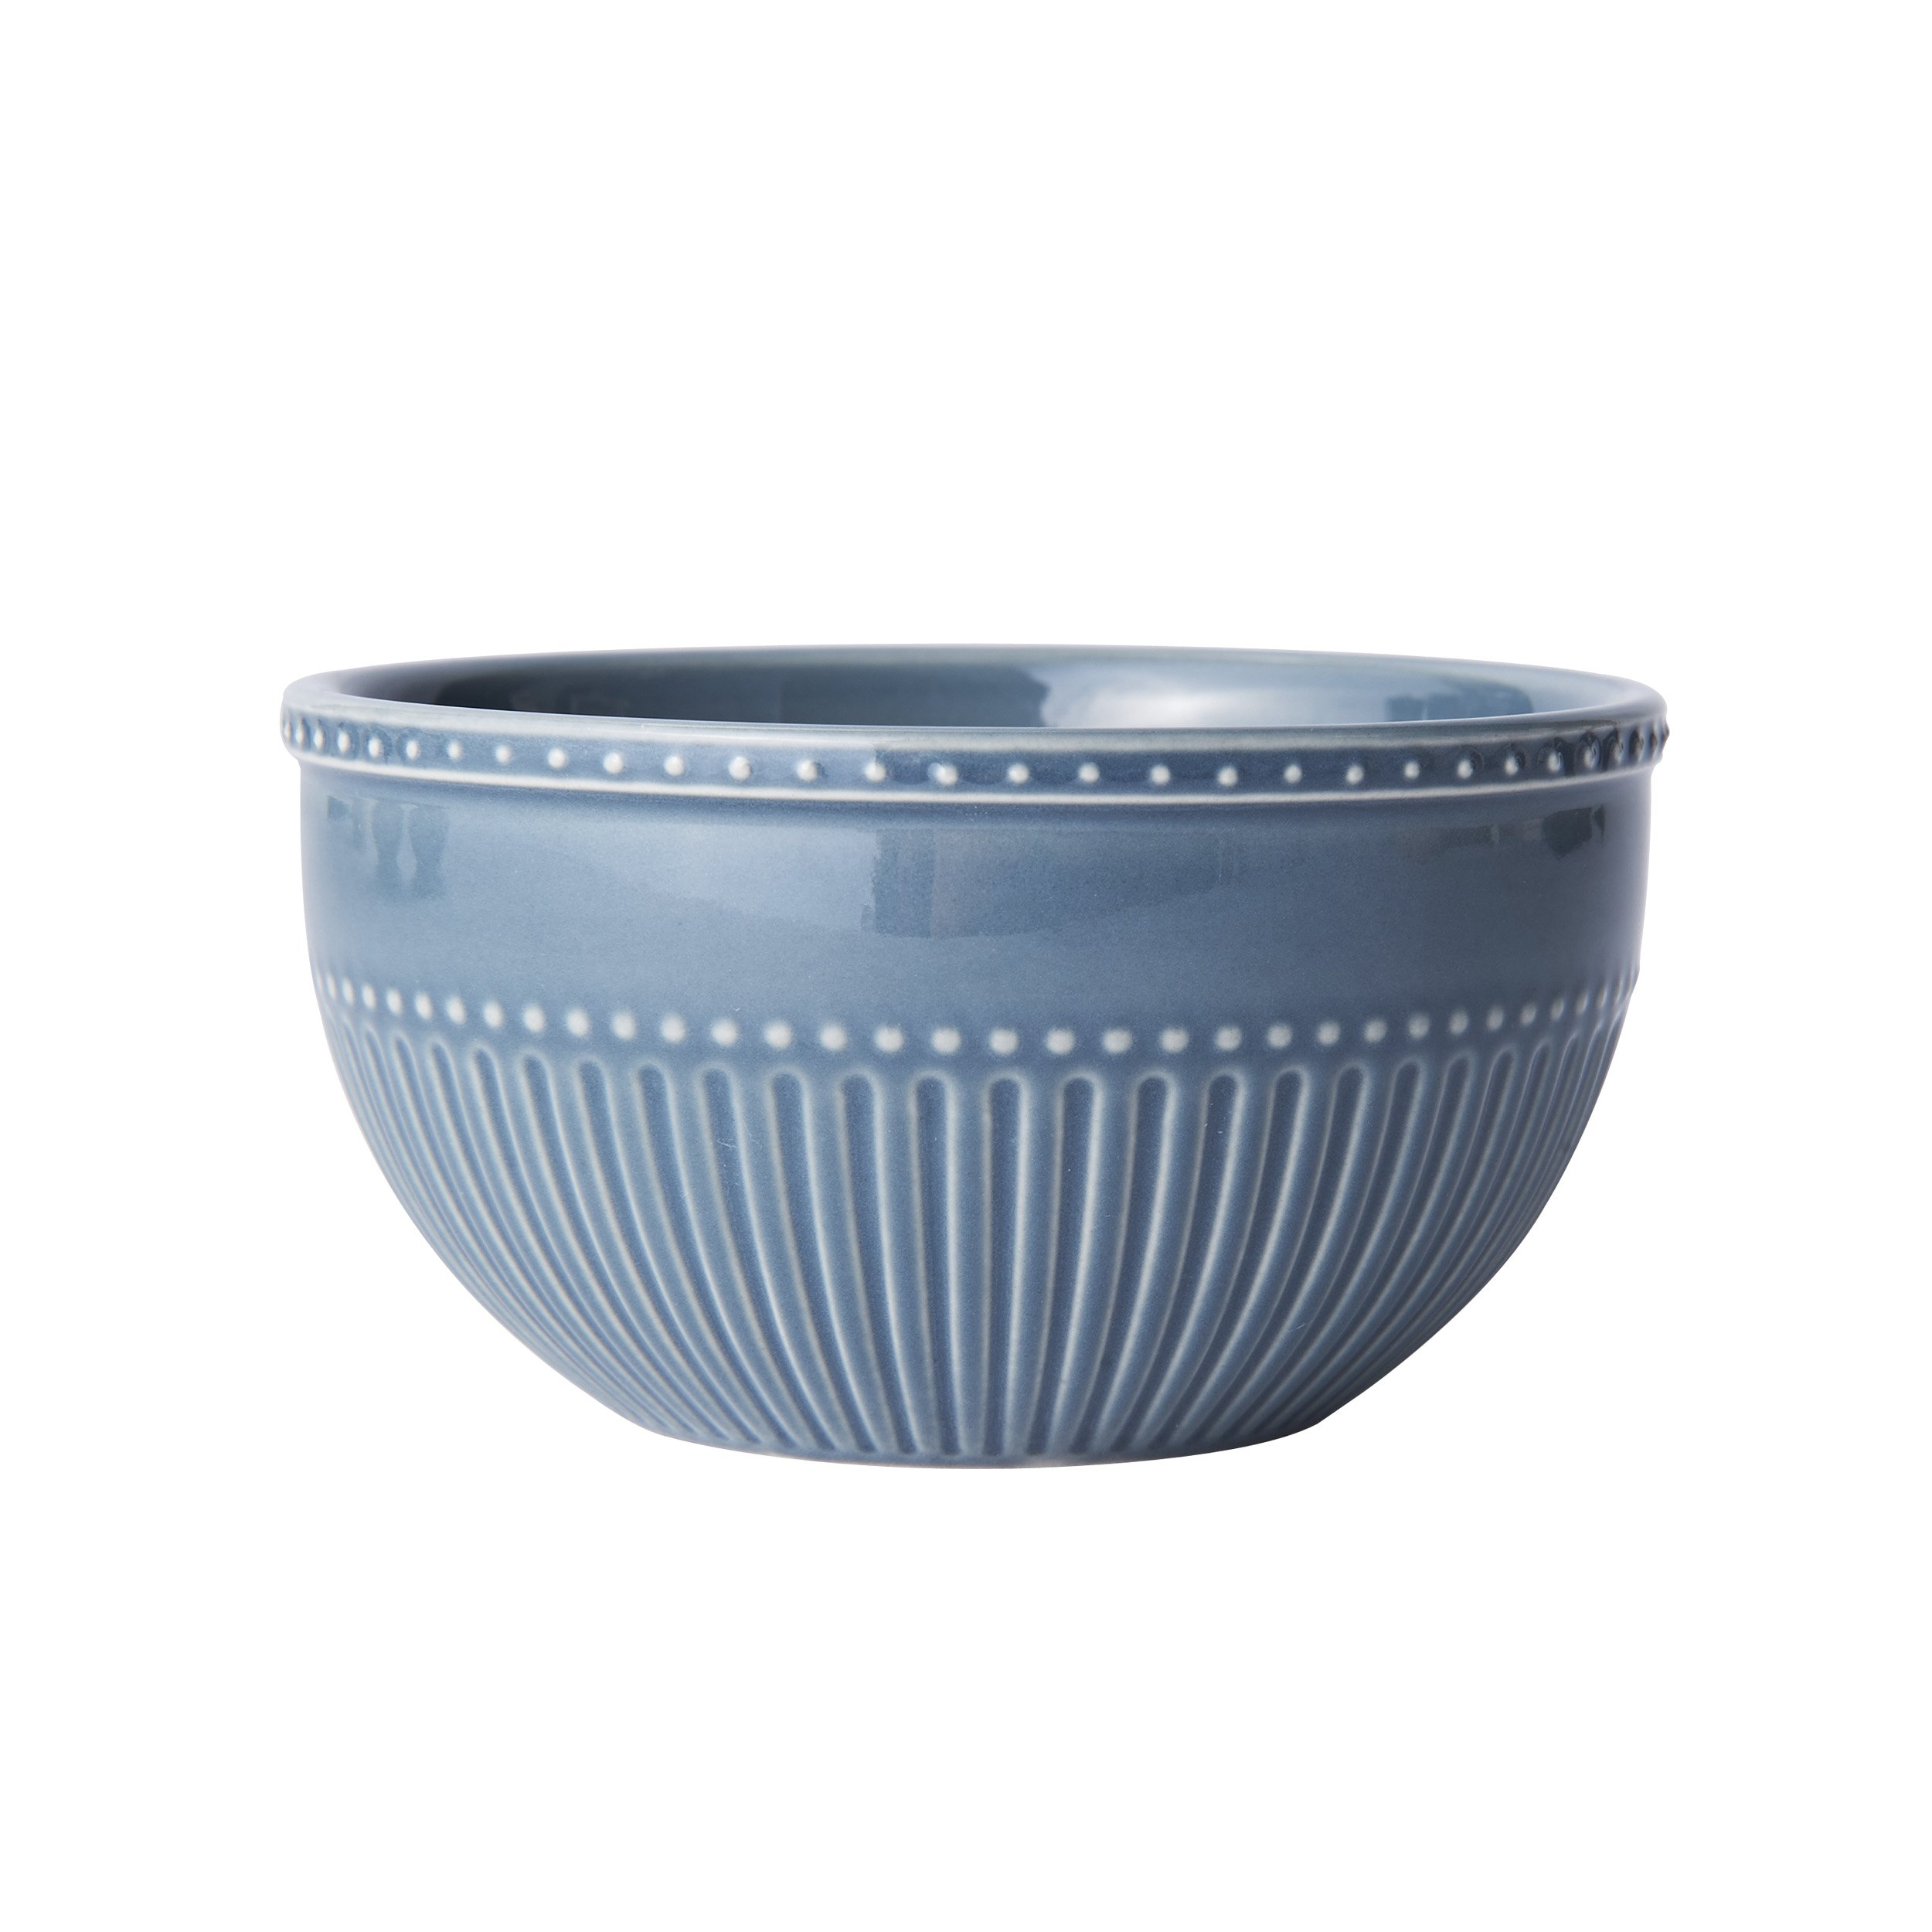 Mikasa Italian Countryside Accents Fruit Bowl, Fluted Blue